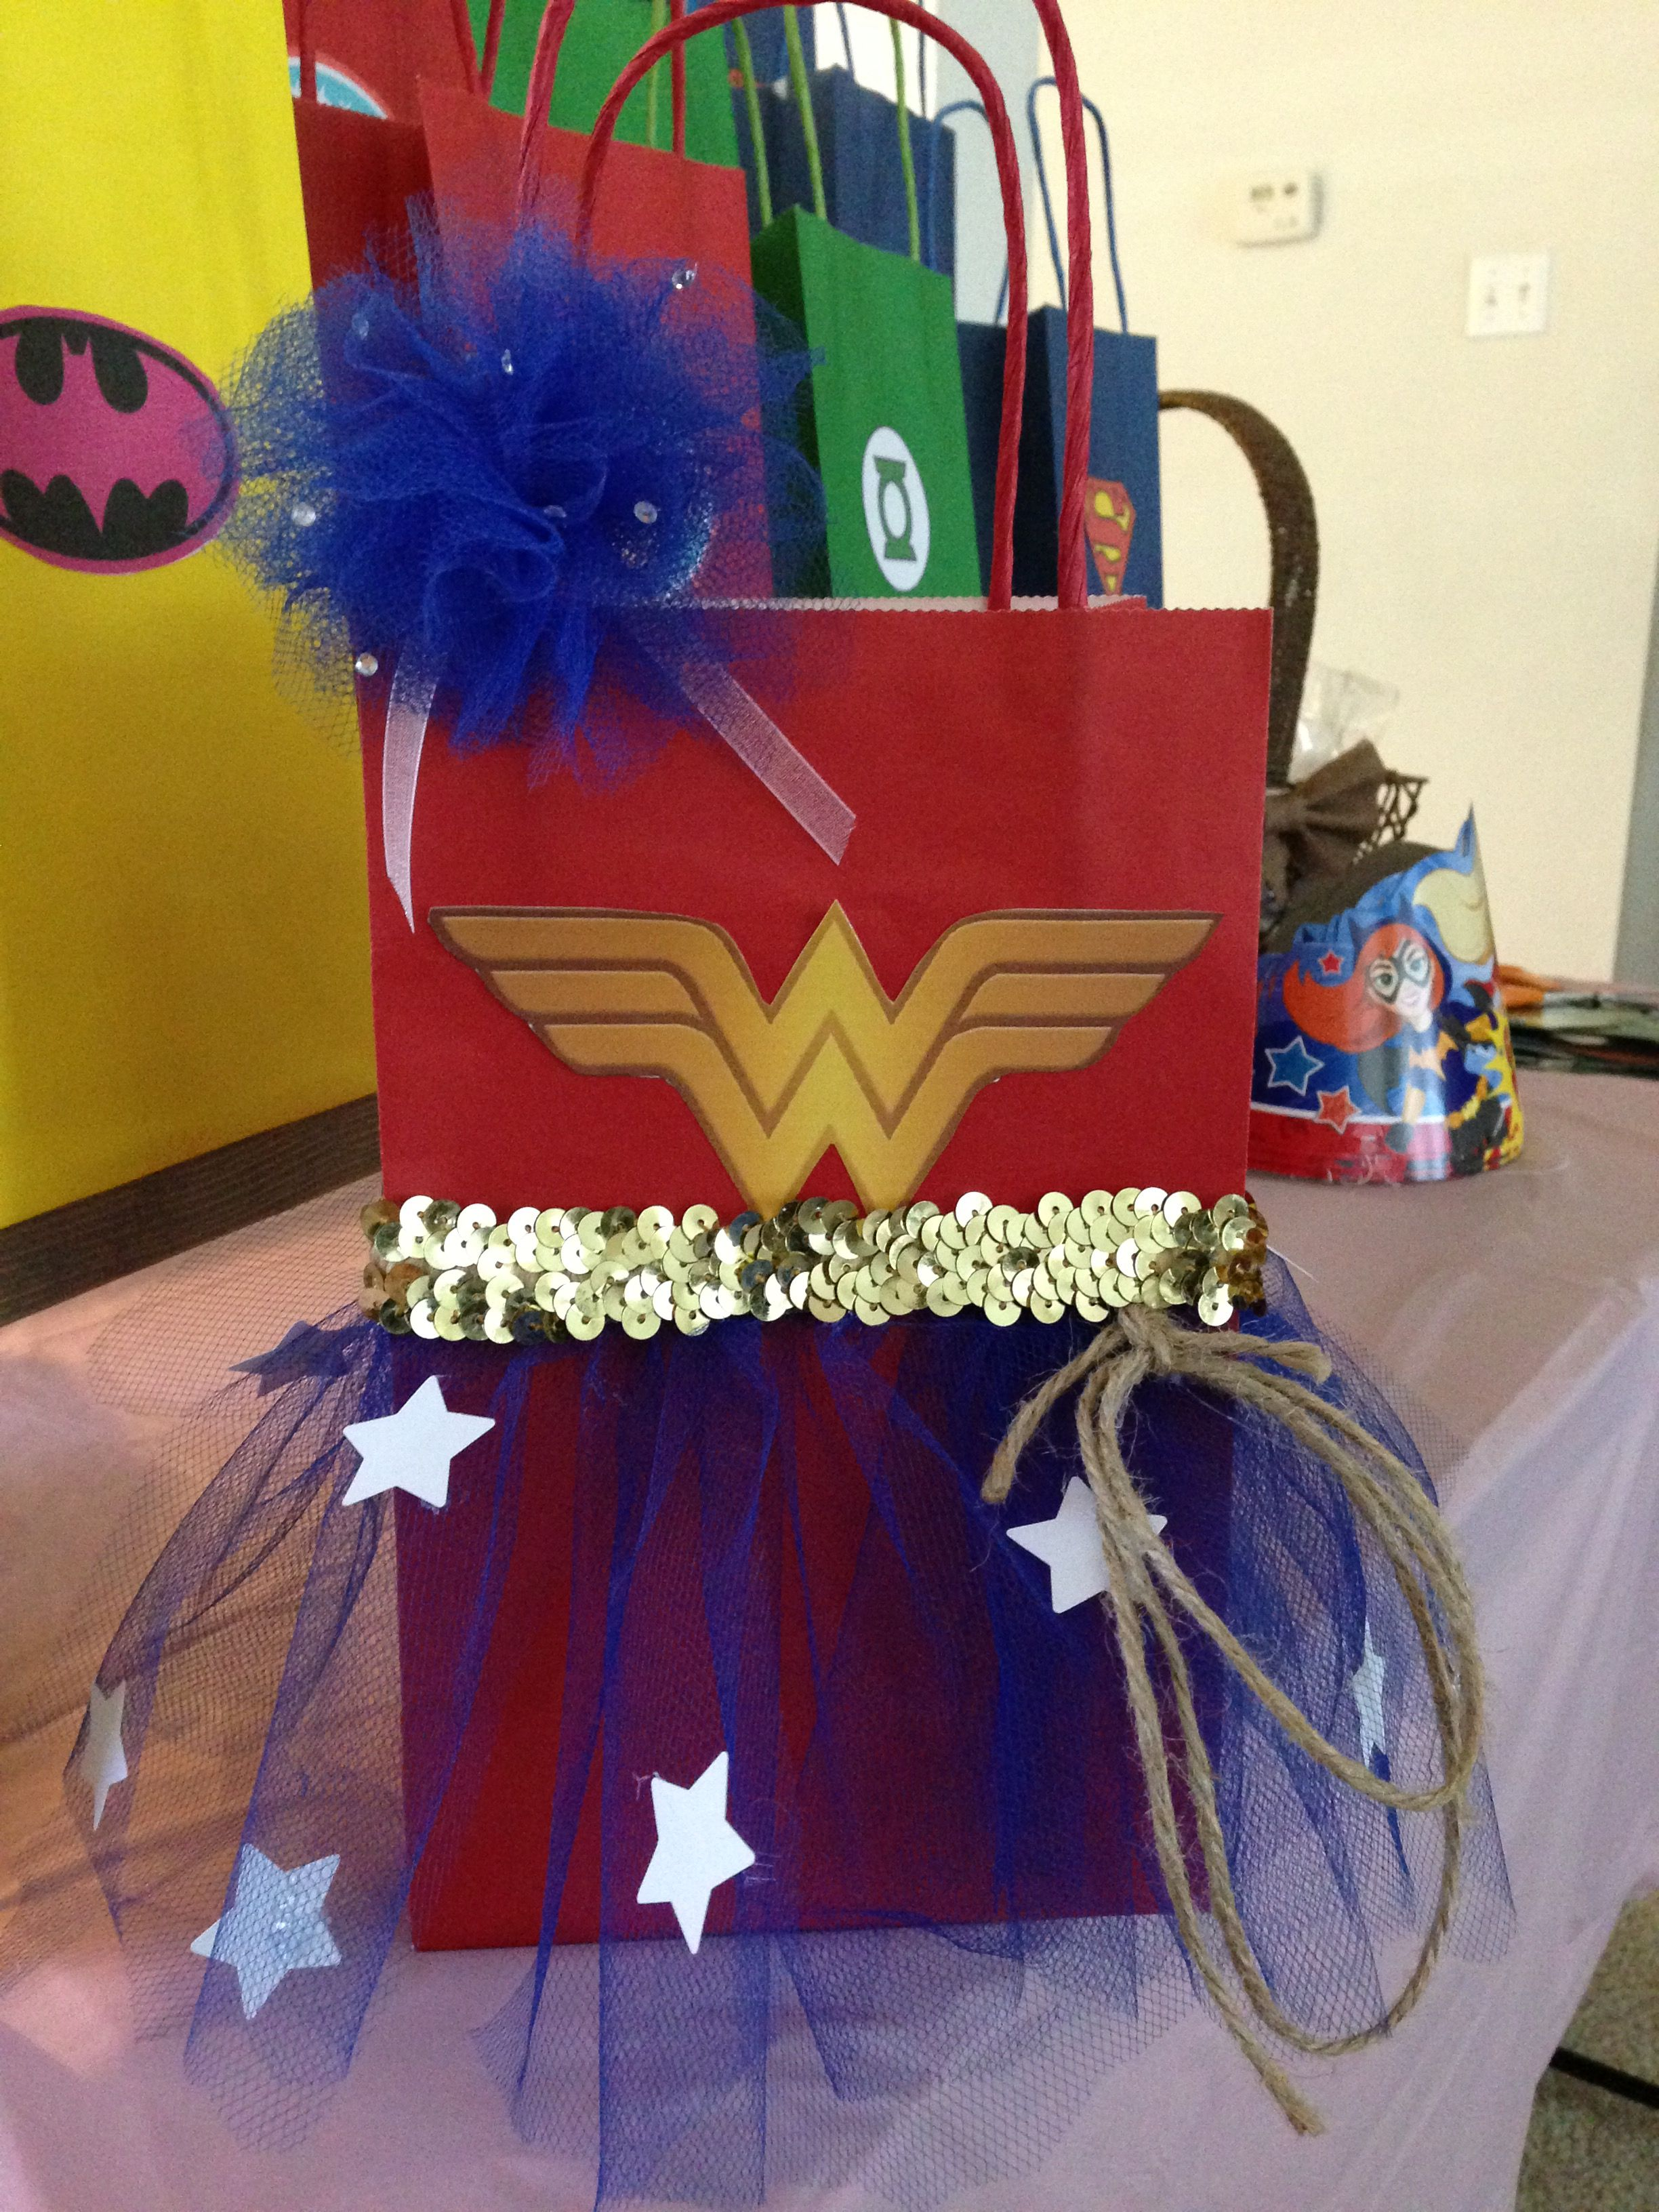 abca05664e Wonder women candy bag | Birthday ideas | Wonder woman birthday ...